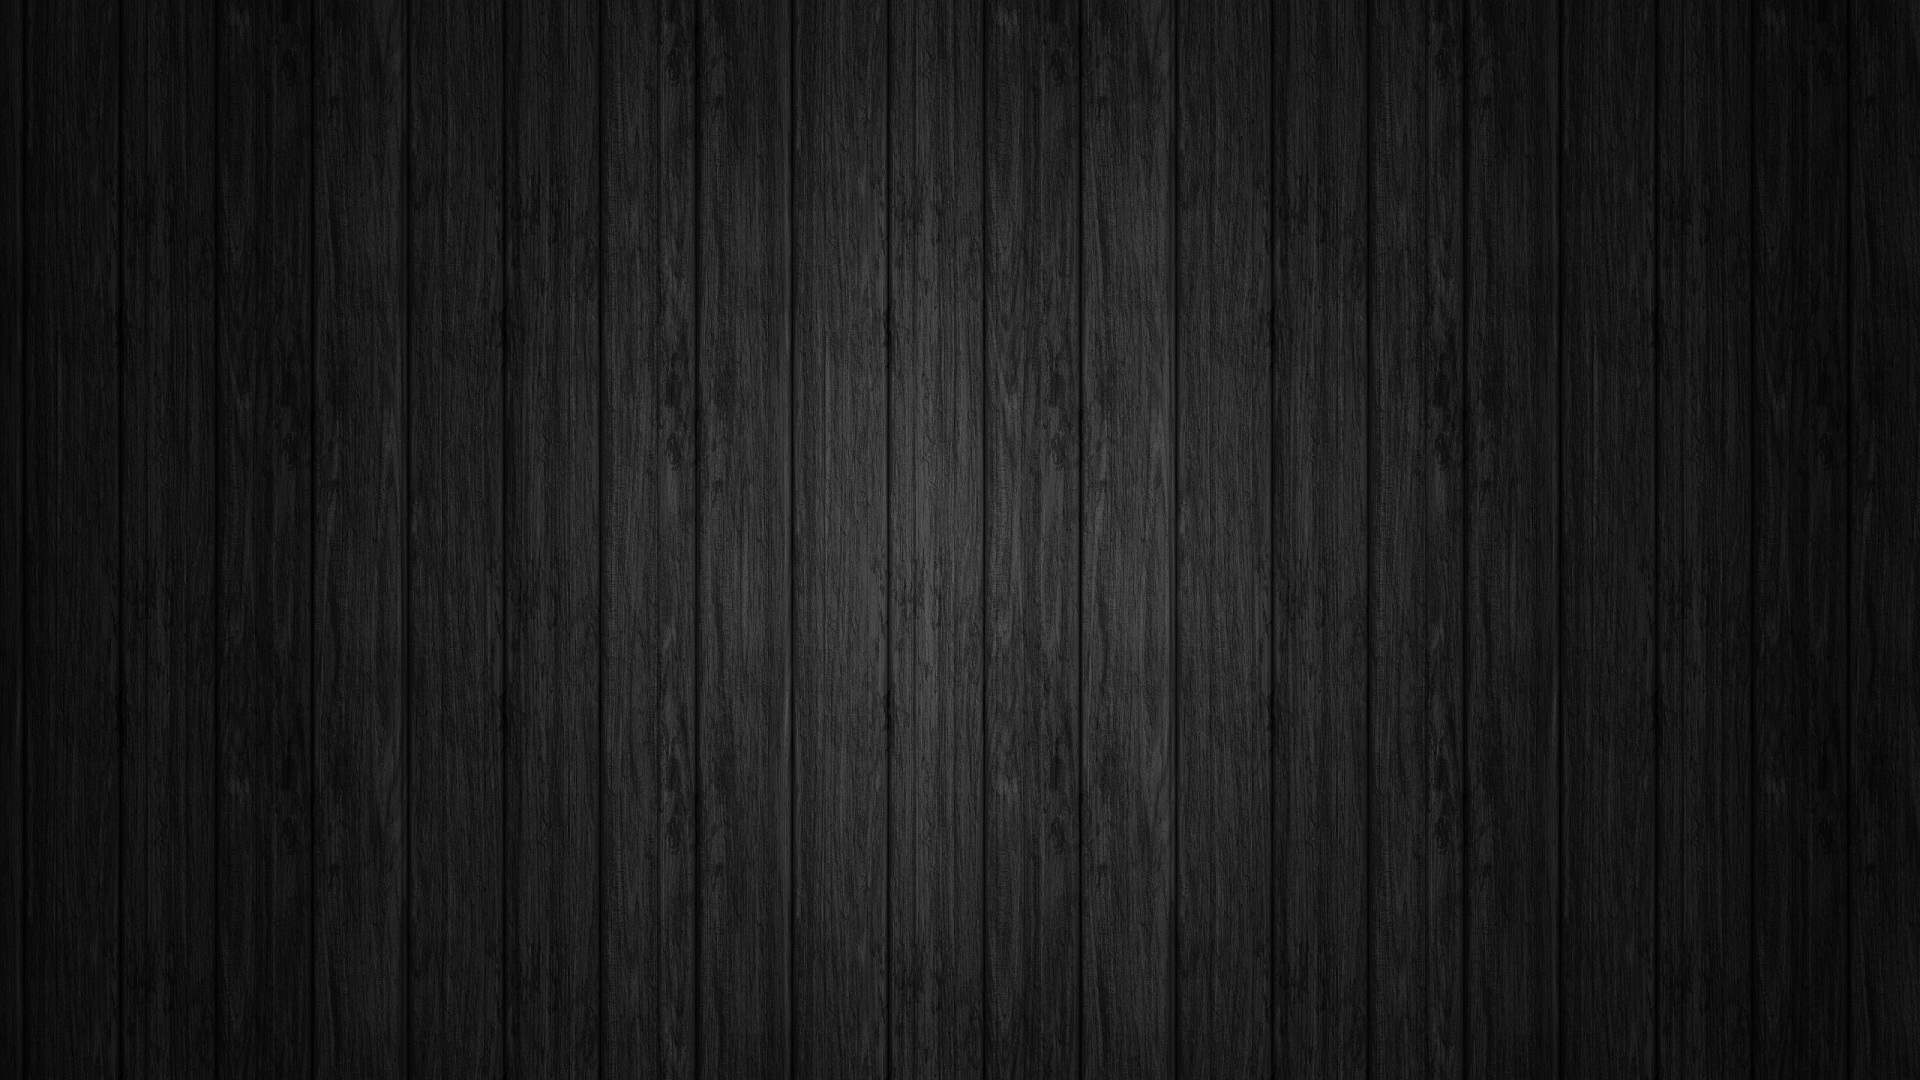 Black-lines-wood-plain-abstract-background-1920%C3%971080-wallpaper-wpc5802887